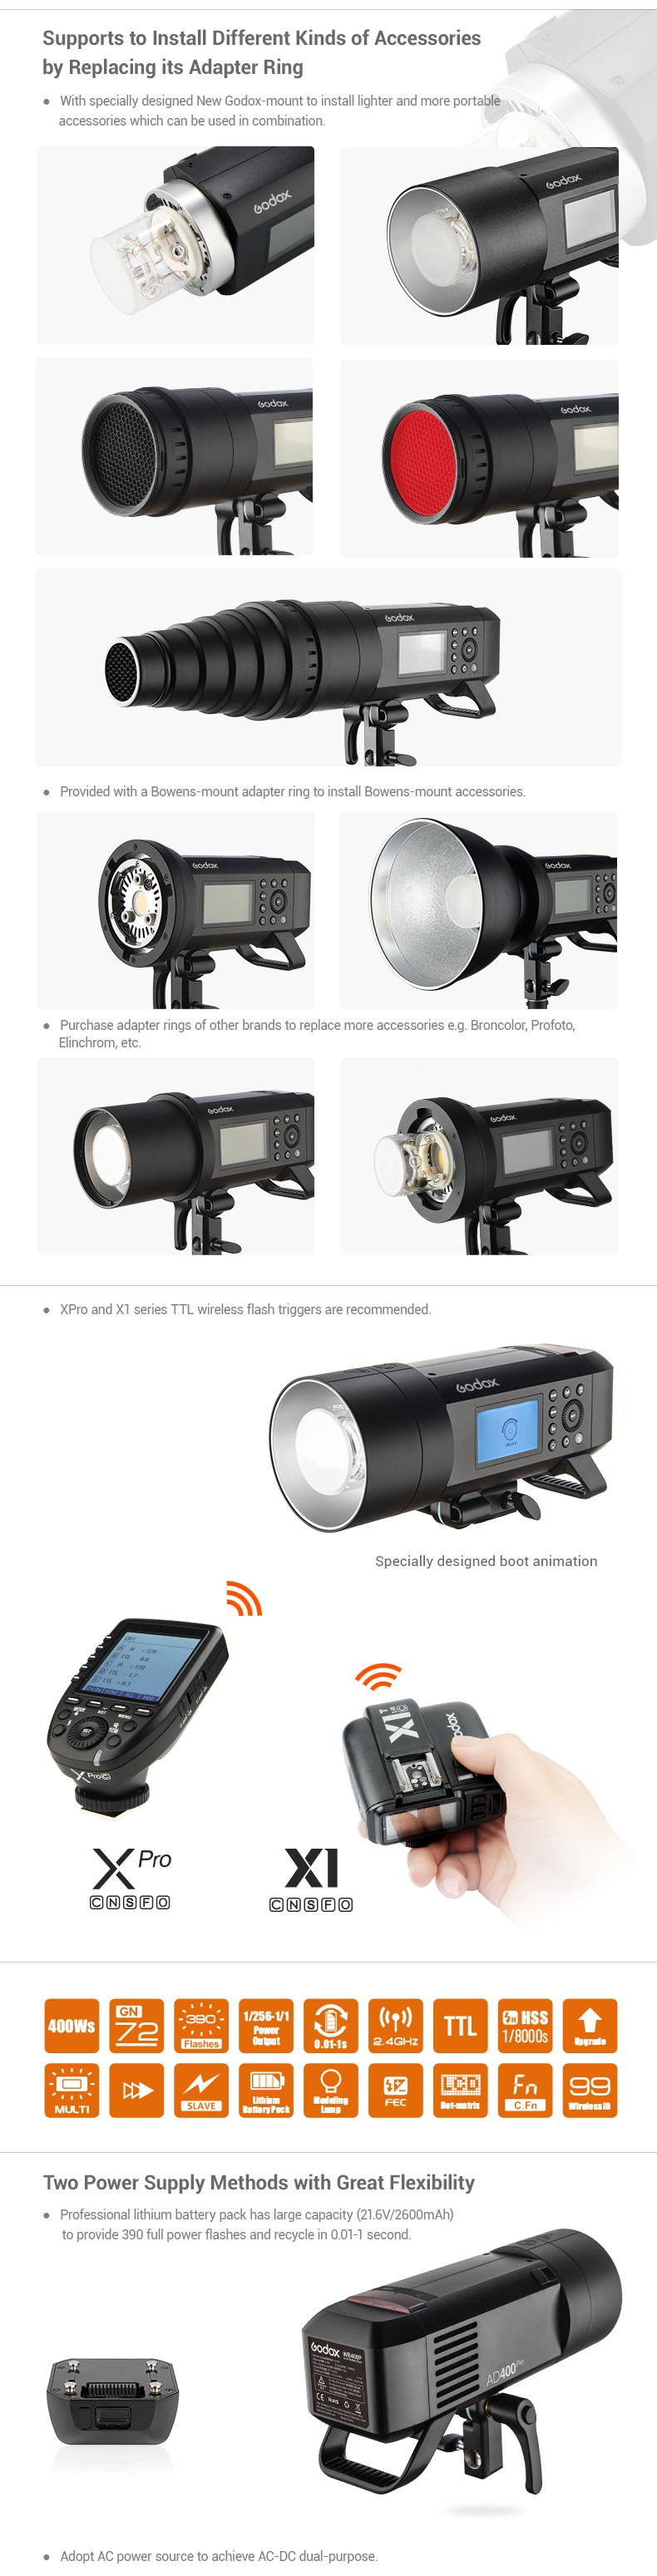 Godox AD400Pro supports a lot of different kinds of accesories. Adapter Ring, 2.4G X wireless system. Two power supply methods. Great Flexibility.